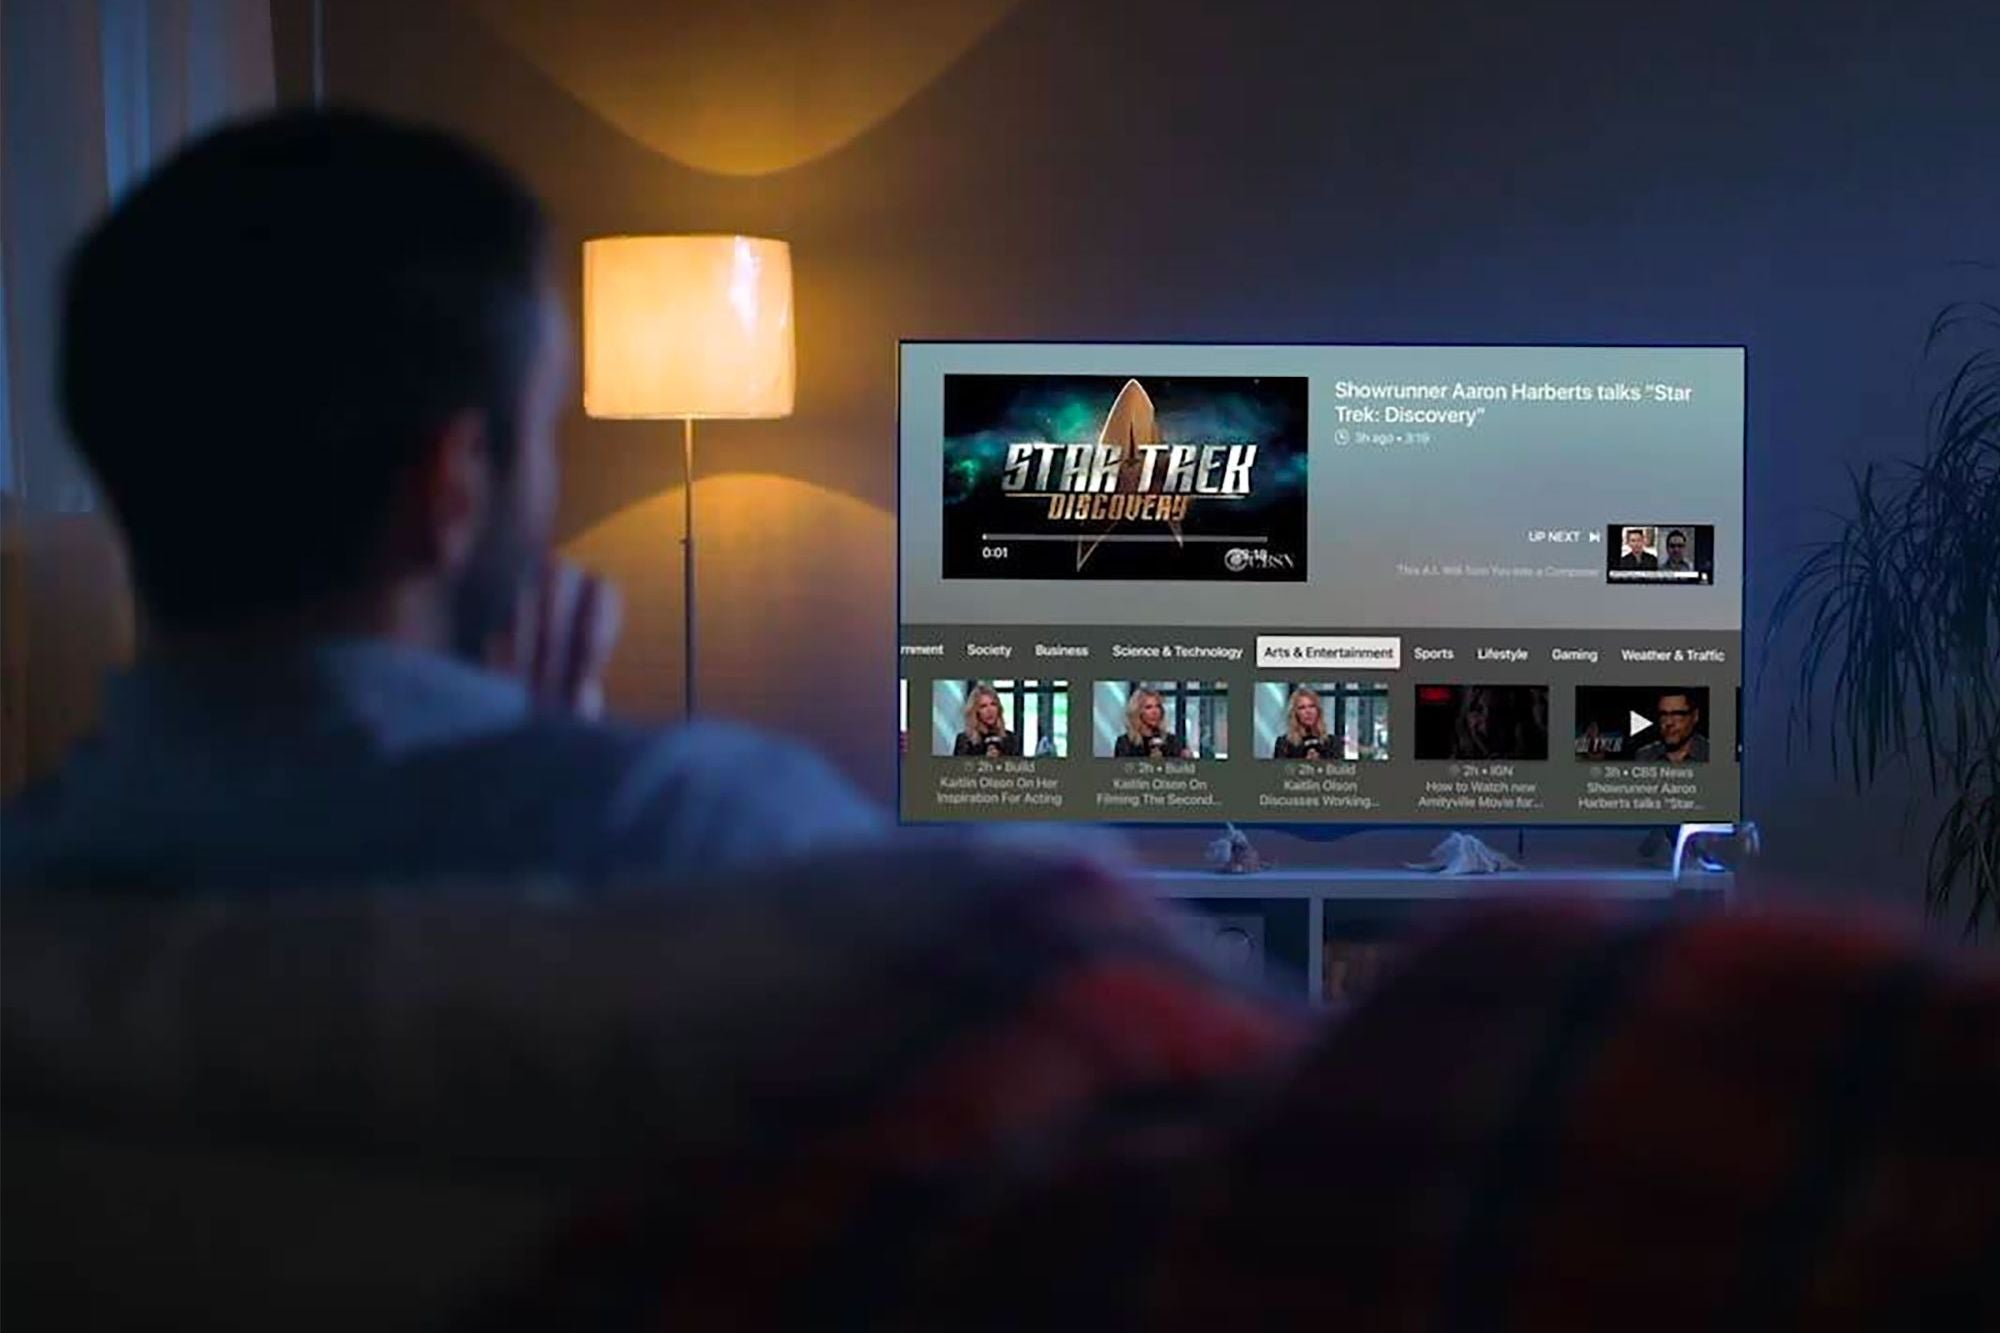 Plex Makes Live TV Free for 3 Months